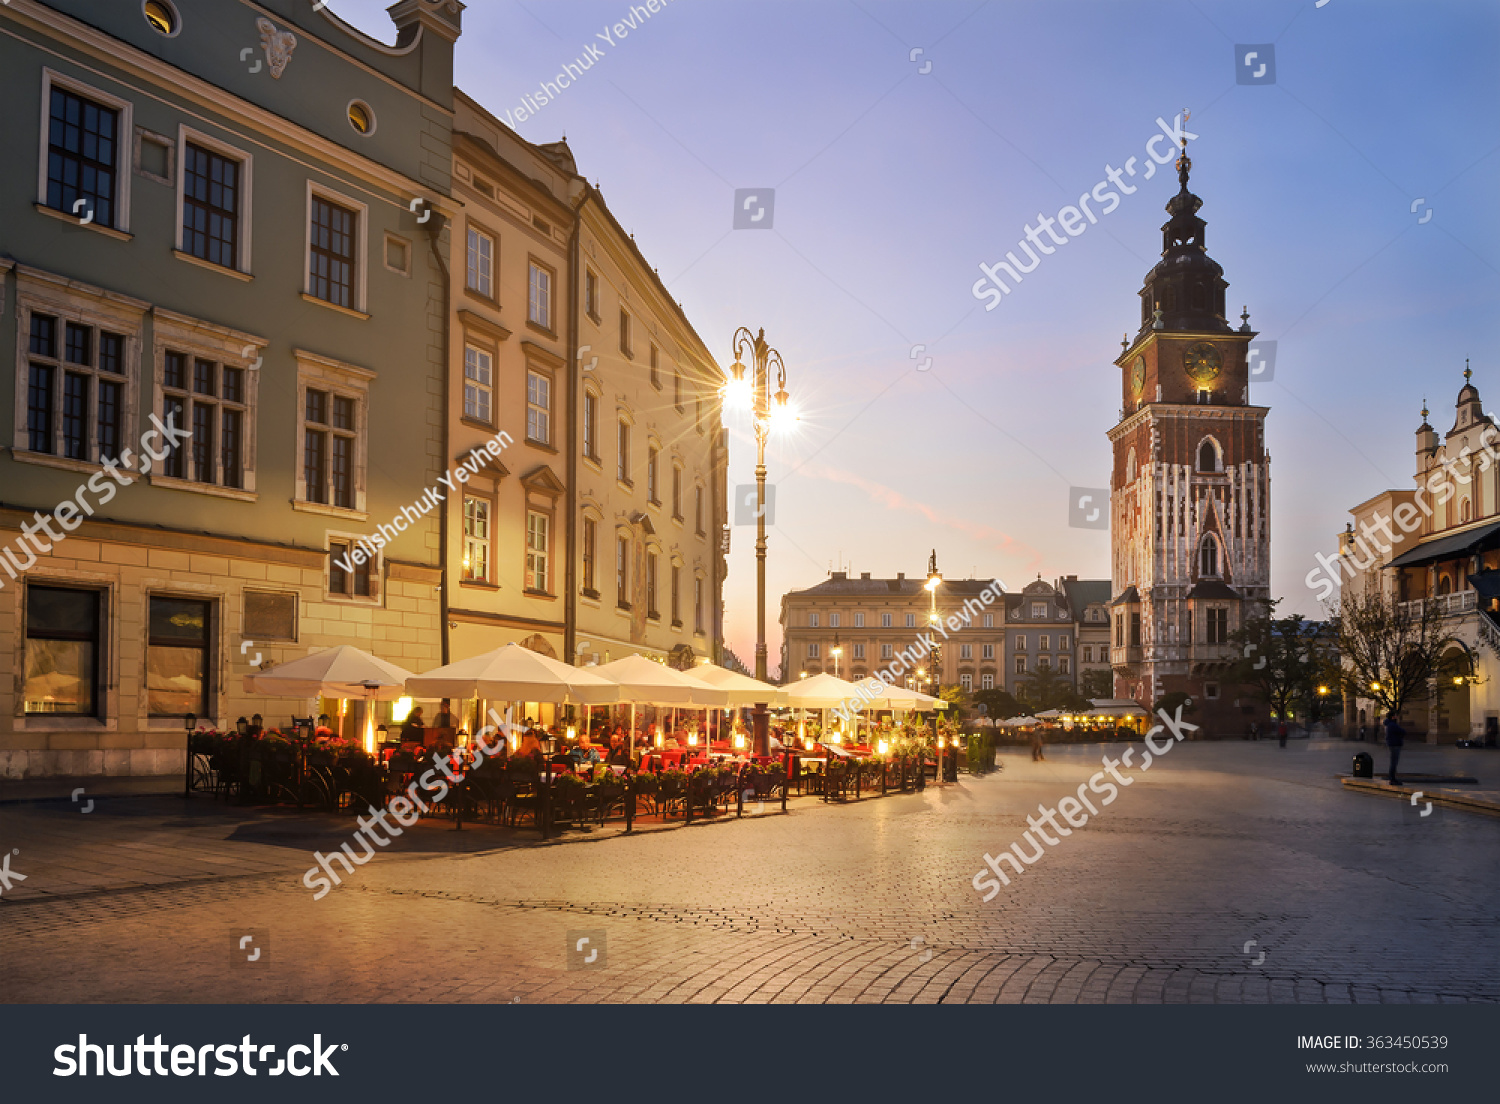 Tower of the town hall and caffe on the Krakow Market Square Poland Europe With light vintage toning